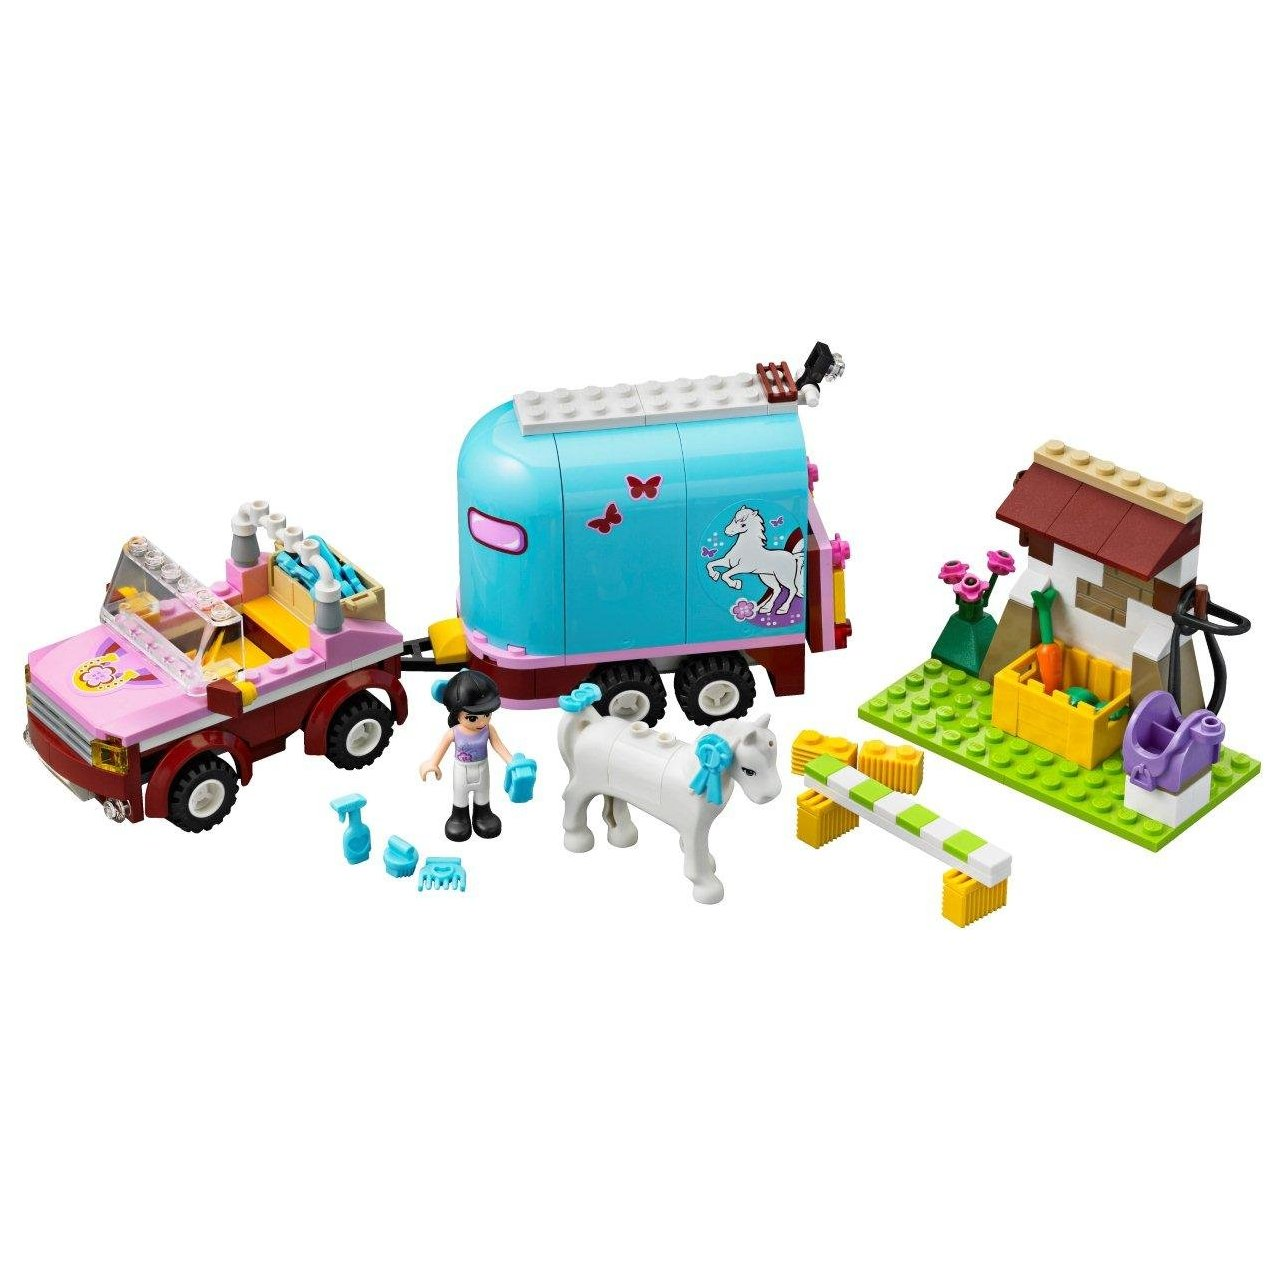 Game Storage Ideas Lego Friends Inspire Girls Globally Friends Sets 2012